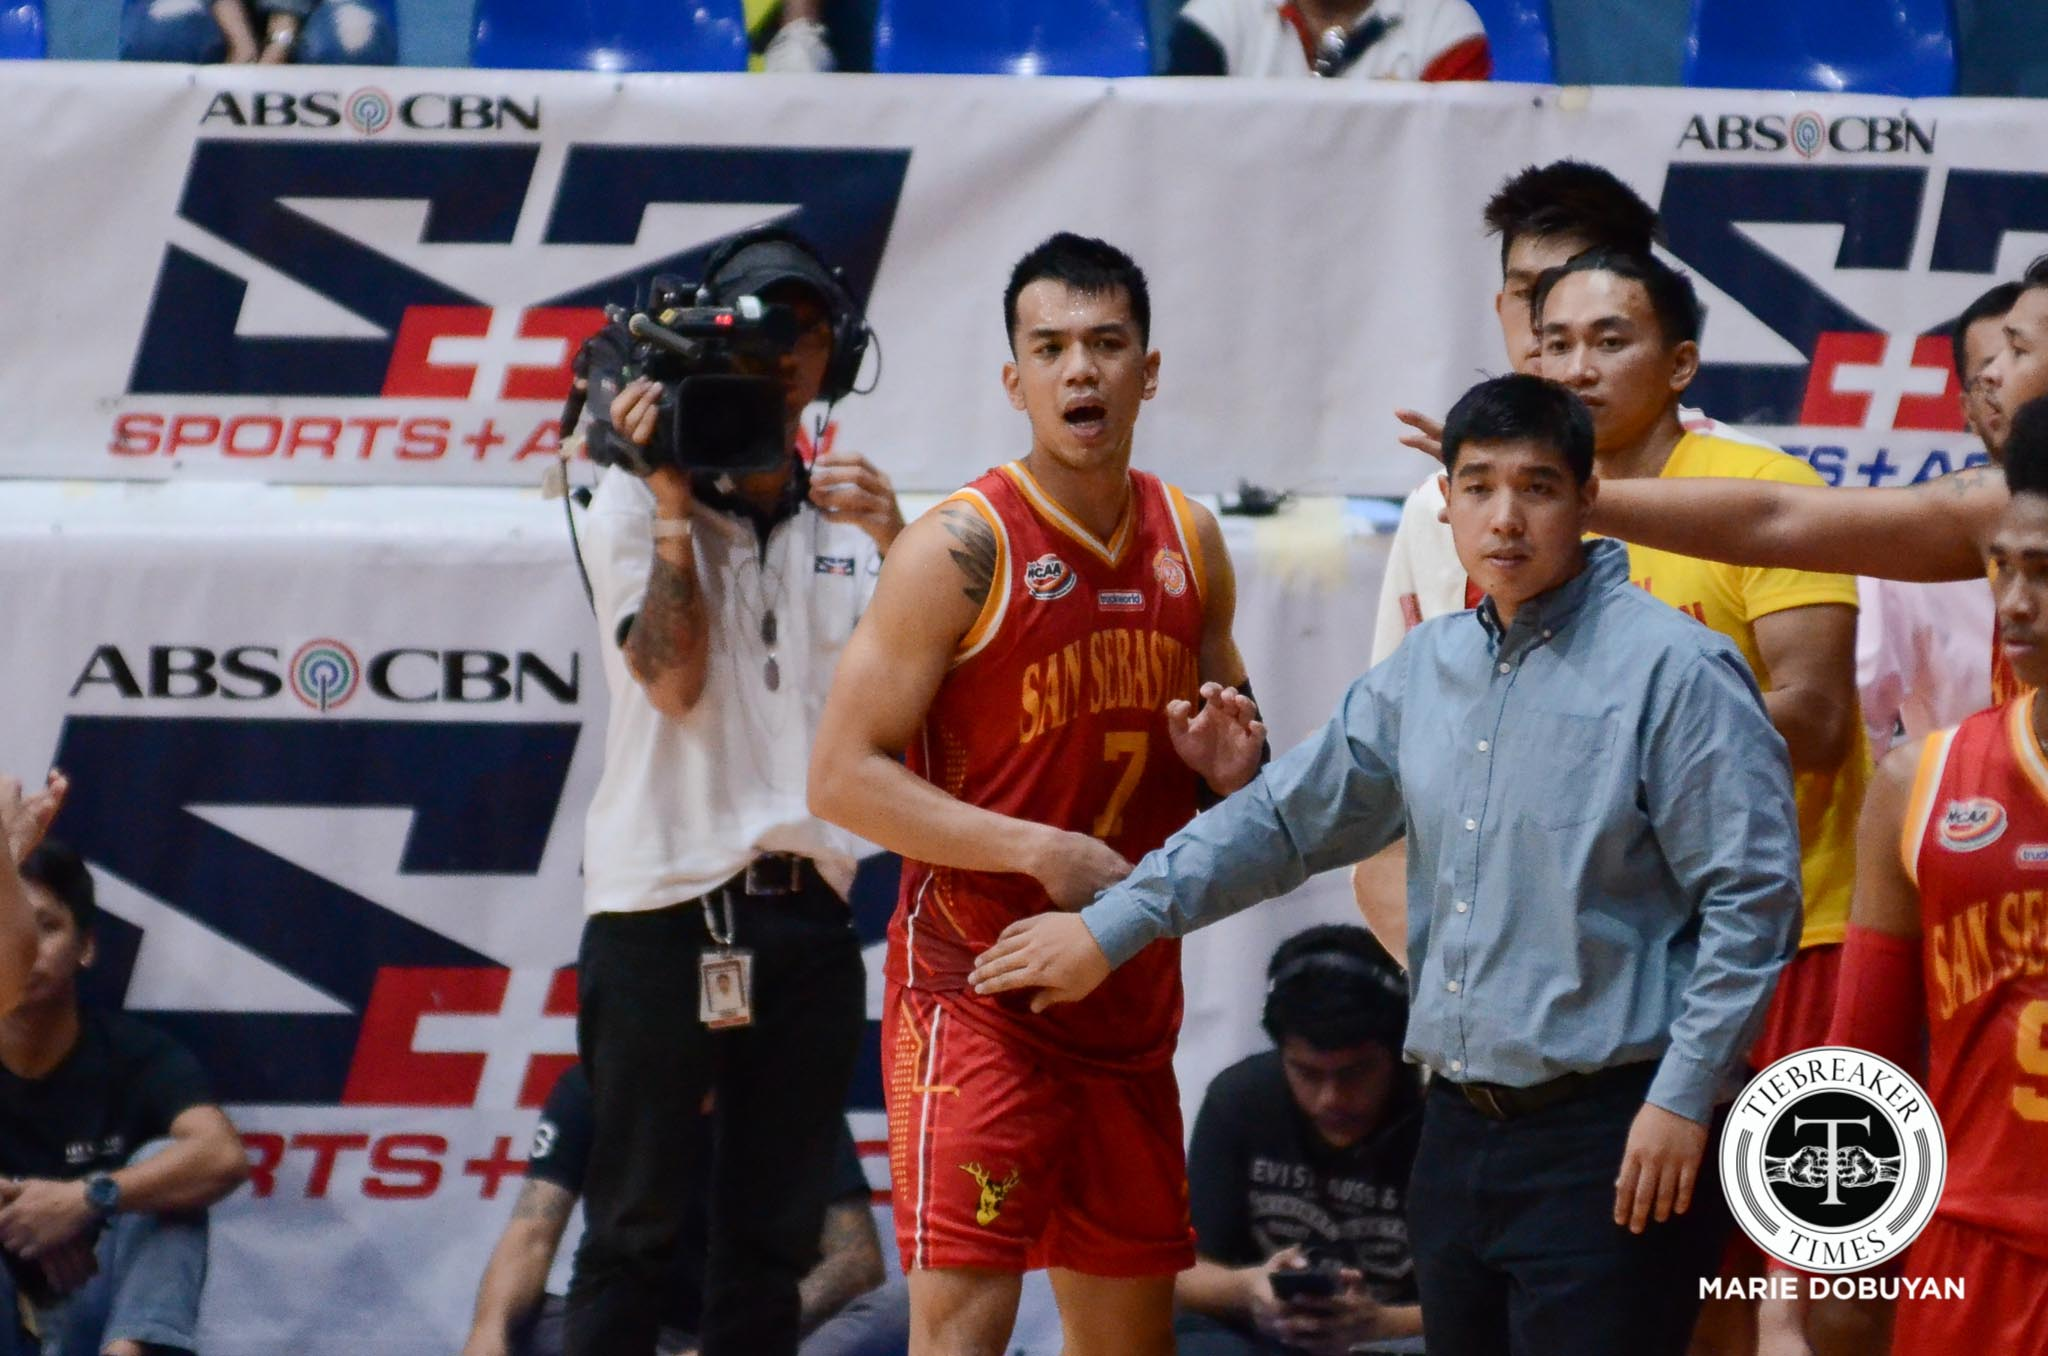 Philippine Sports News - Tiebreaker Times With suspension looming, Michael Calisaan laments not being able to play in homecourt Basketball NCAA News SSC-R  San Sebastian Seniors Basketball NCAA Season 93 Seniors Basketball NCAA Season 93 Michael Calisaan